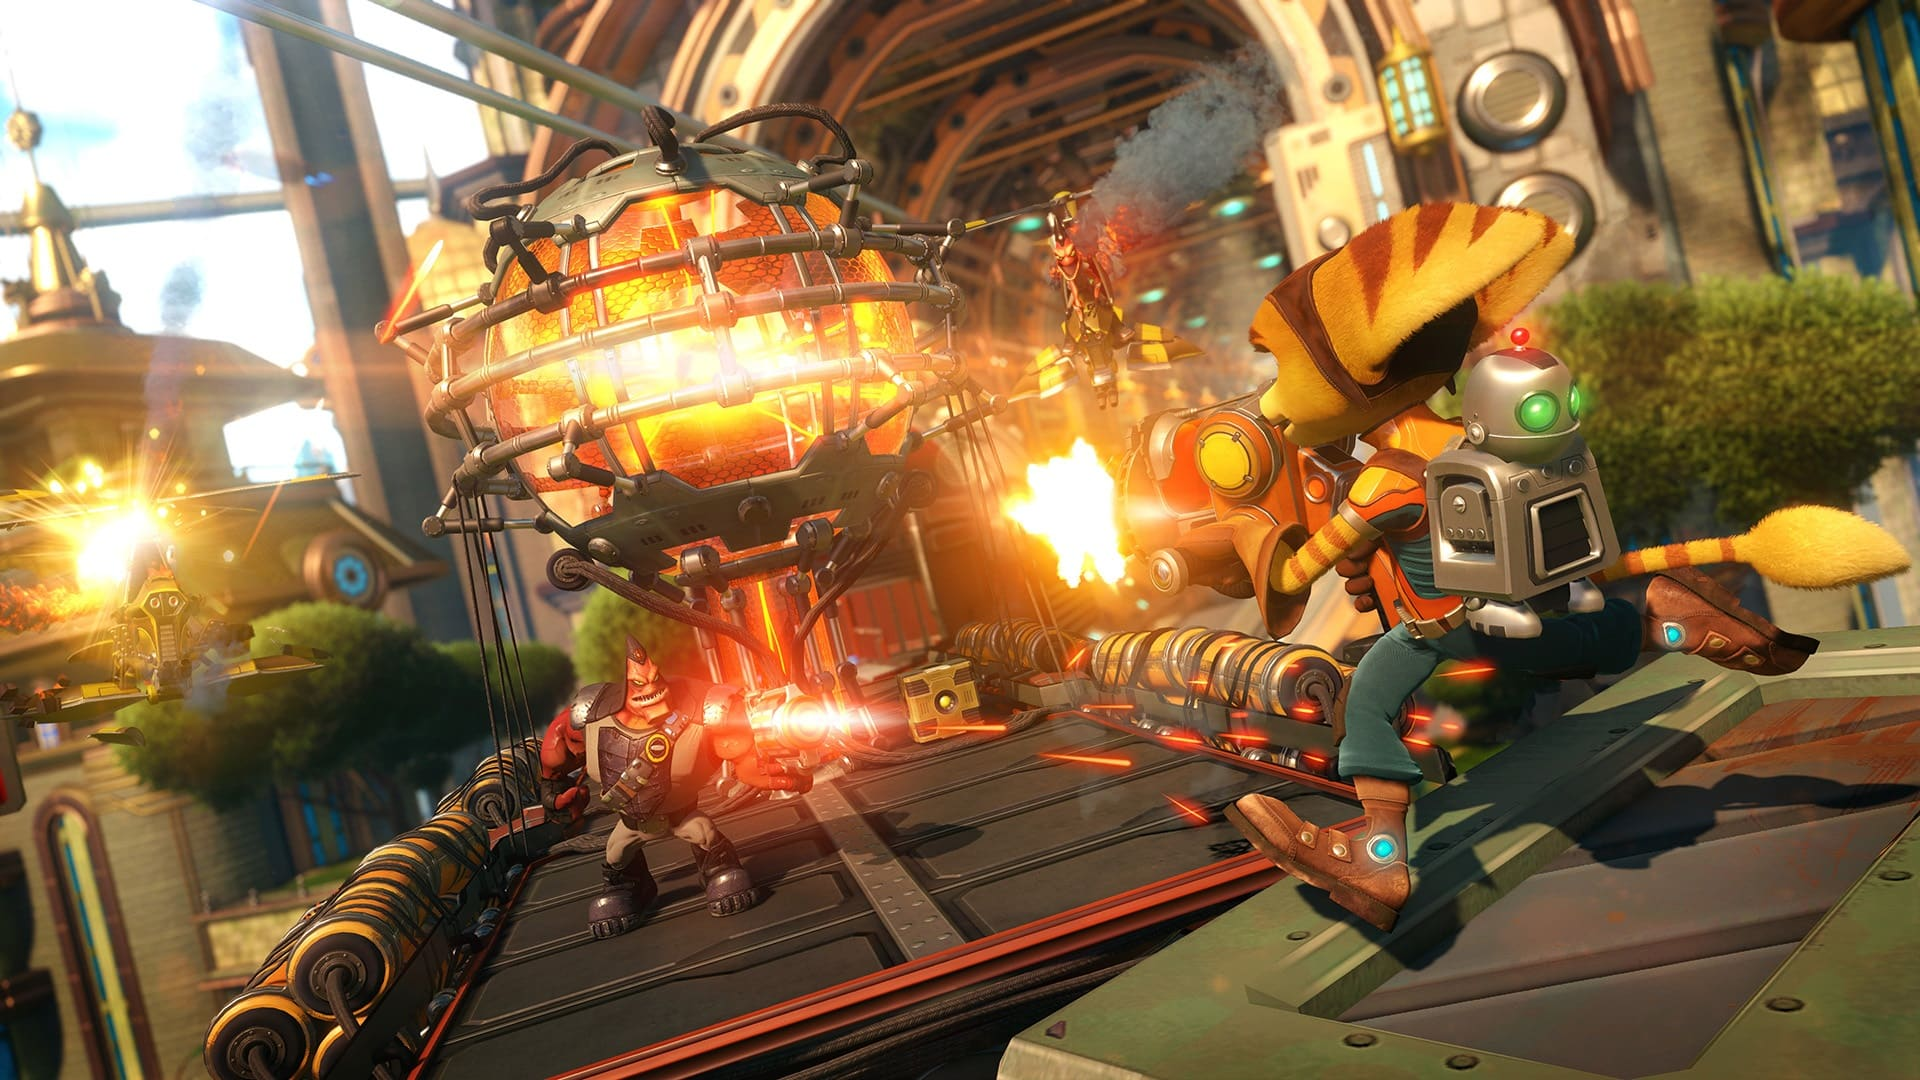 Insomniac Games 2016 Ratchet & Clank PS4 PlayStation 4 remake reimagining